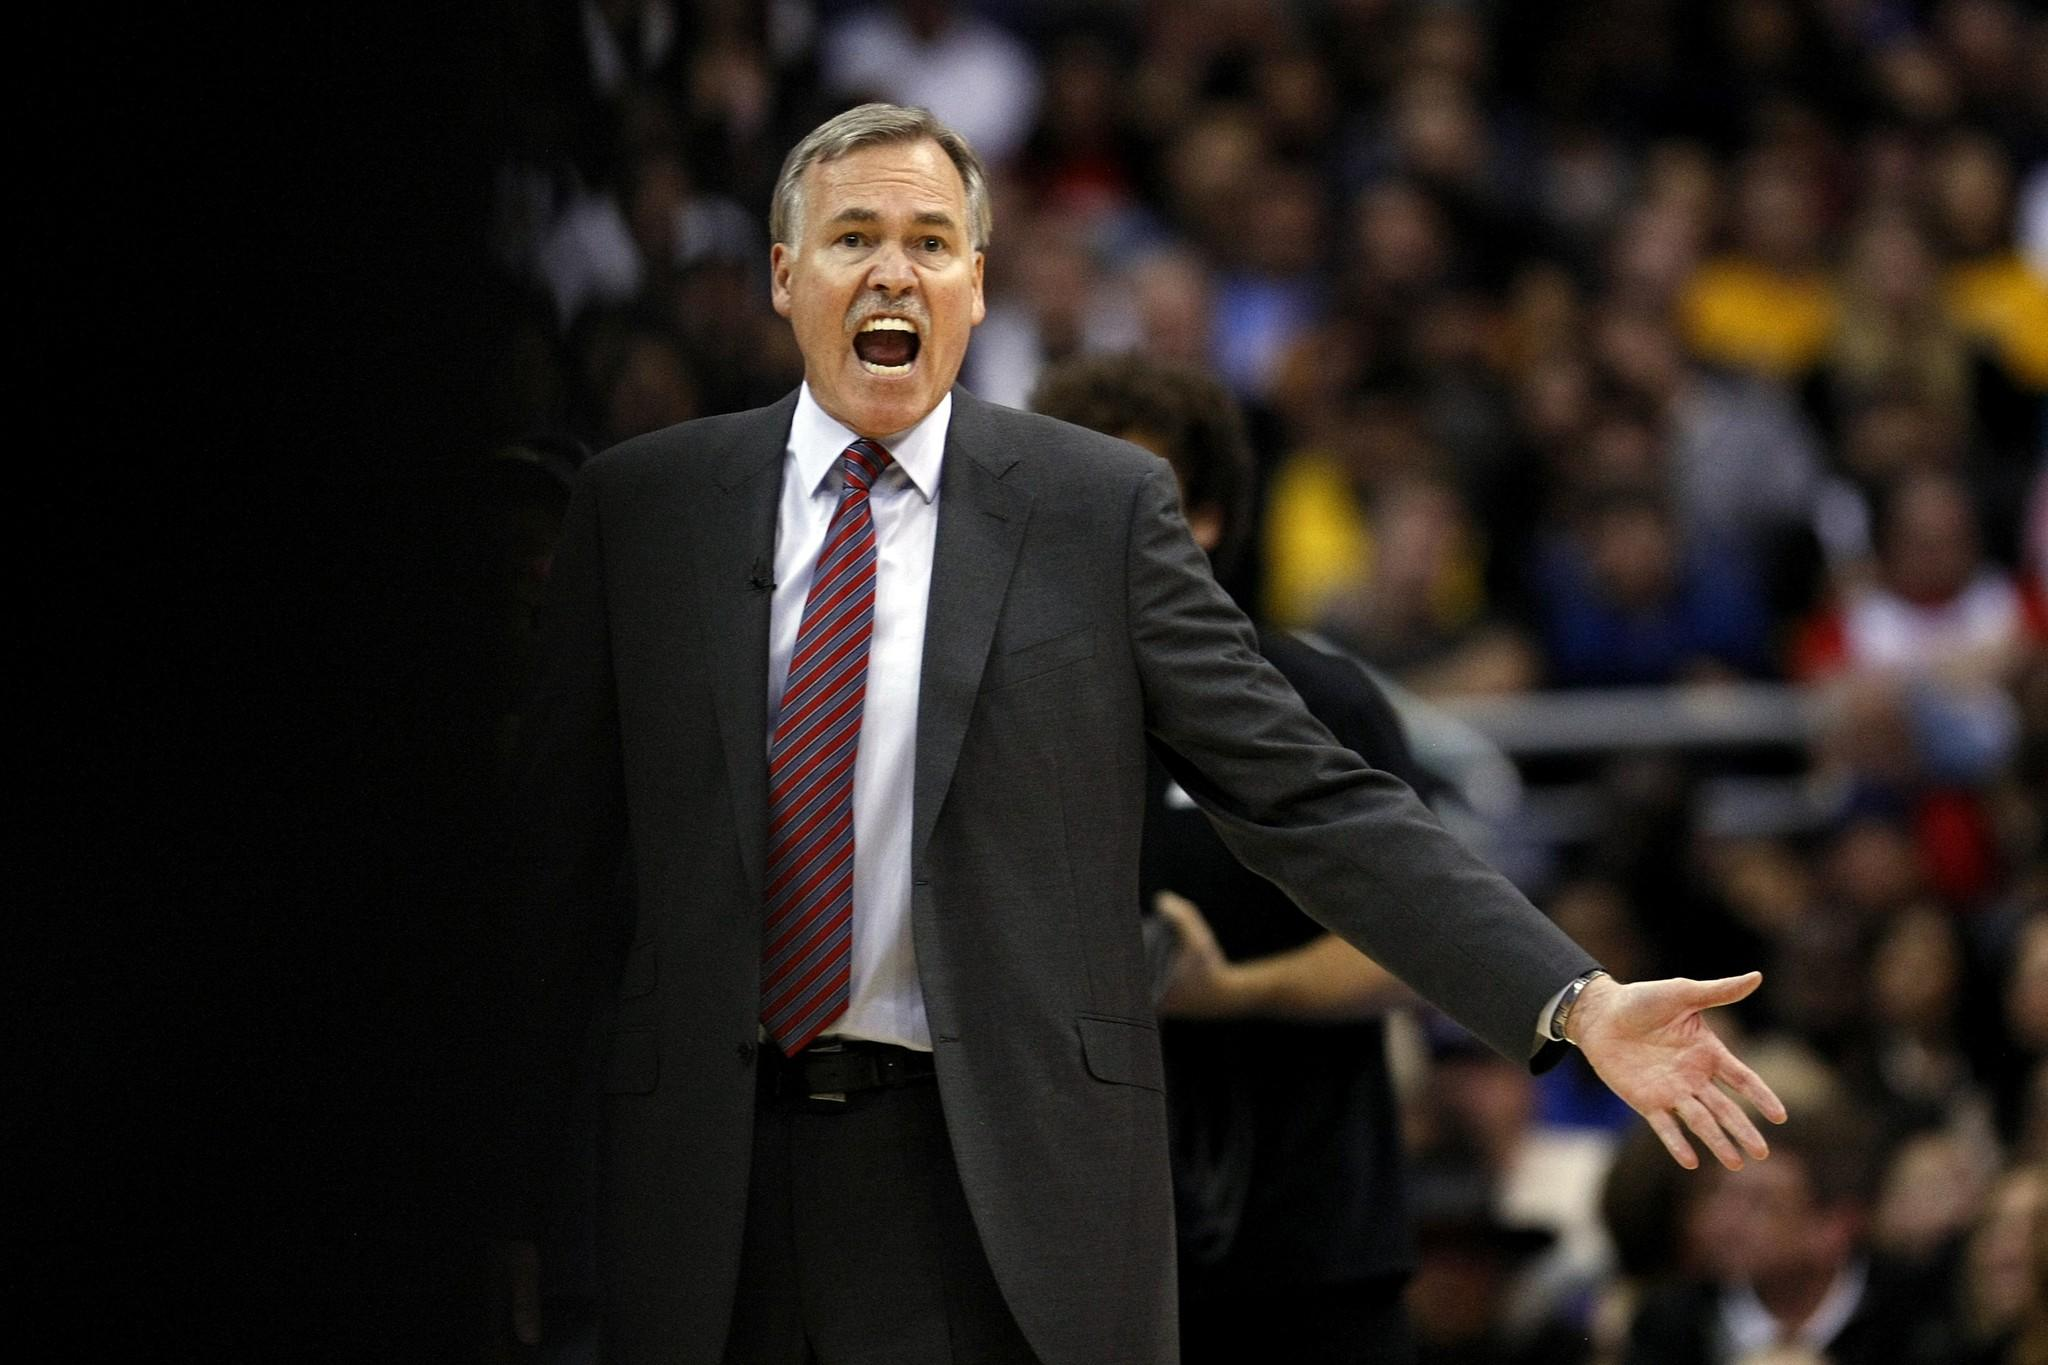 Lakers Coach Mike D'Antoni yells out instructions to his team during the Lakers' 123-87 loss to the Clippers on Jan. 10.